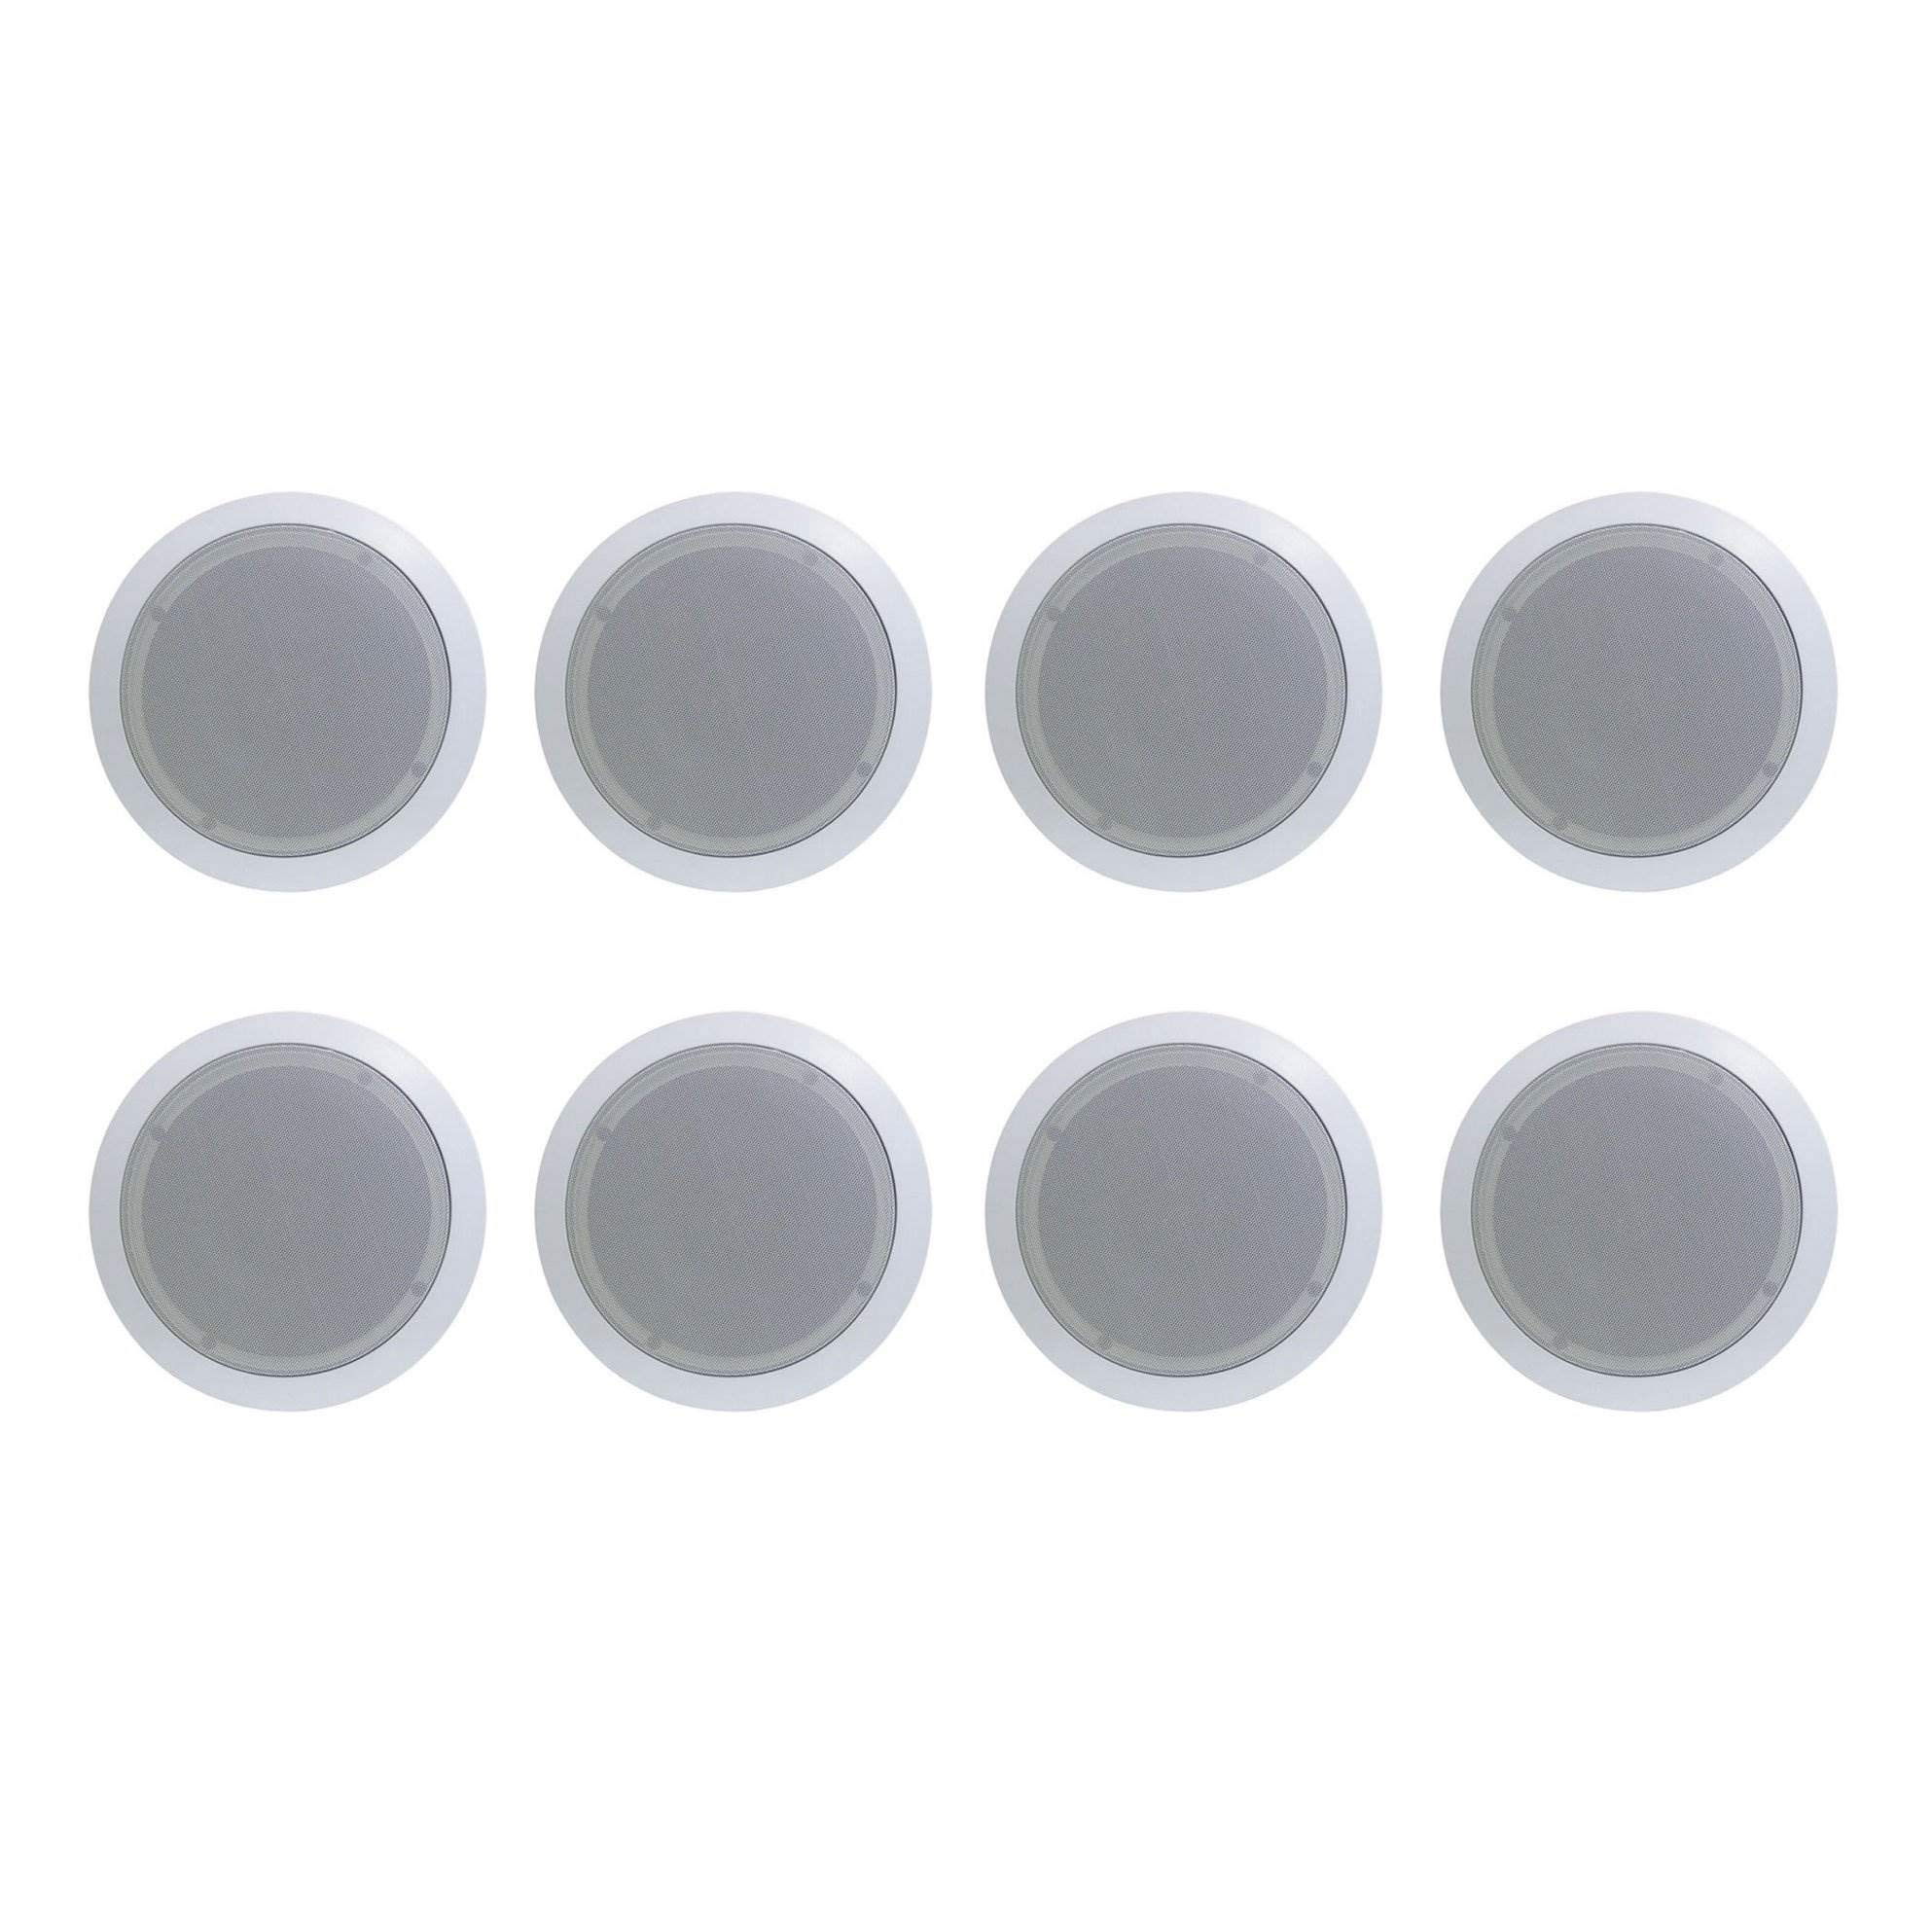 8) New PYLE PRO PDIC61RD 6.5'' 200W 2-Way In-Ceiling/Wall Speaker System White by Pyle Home